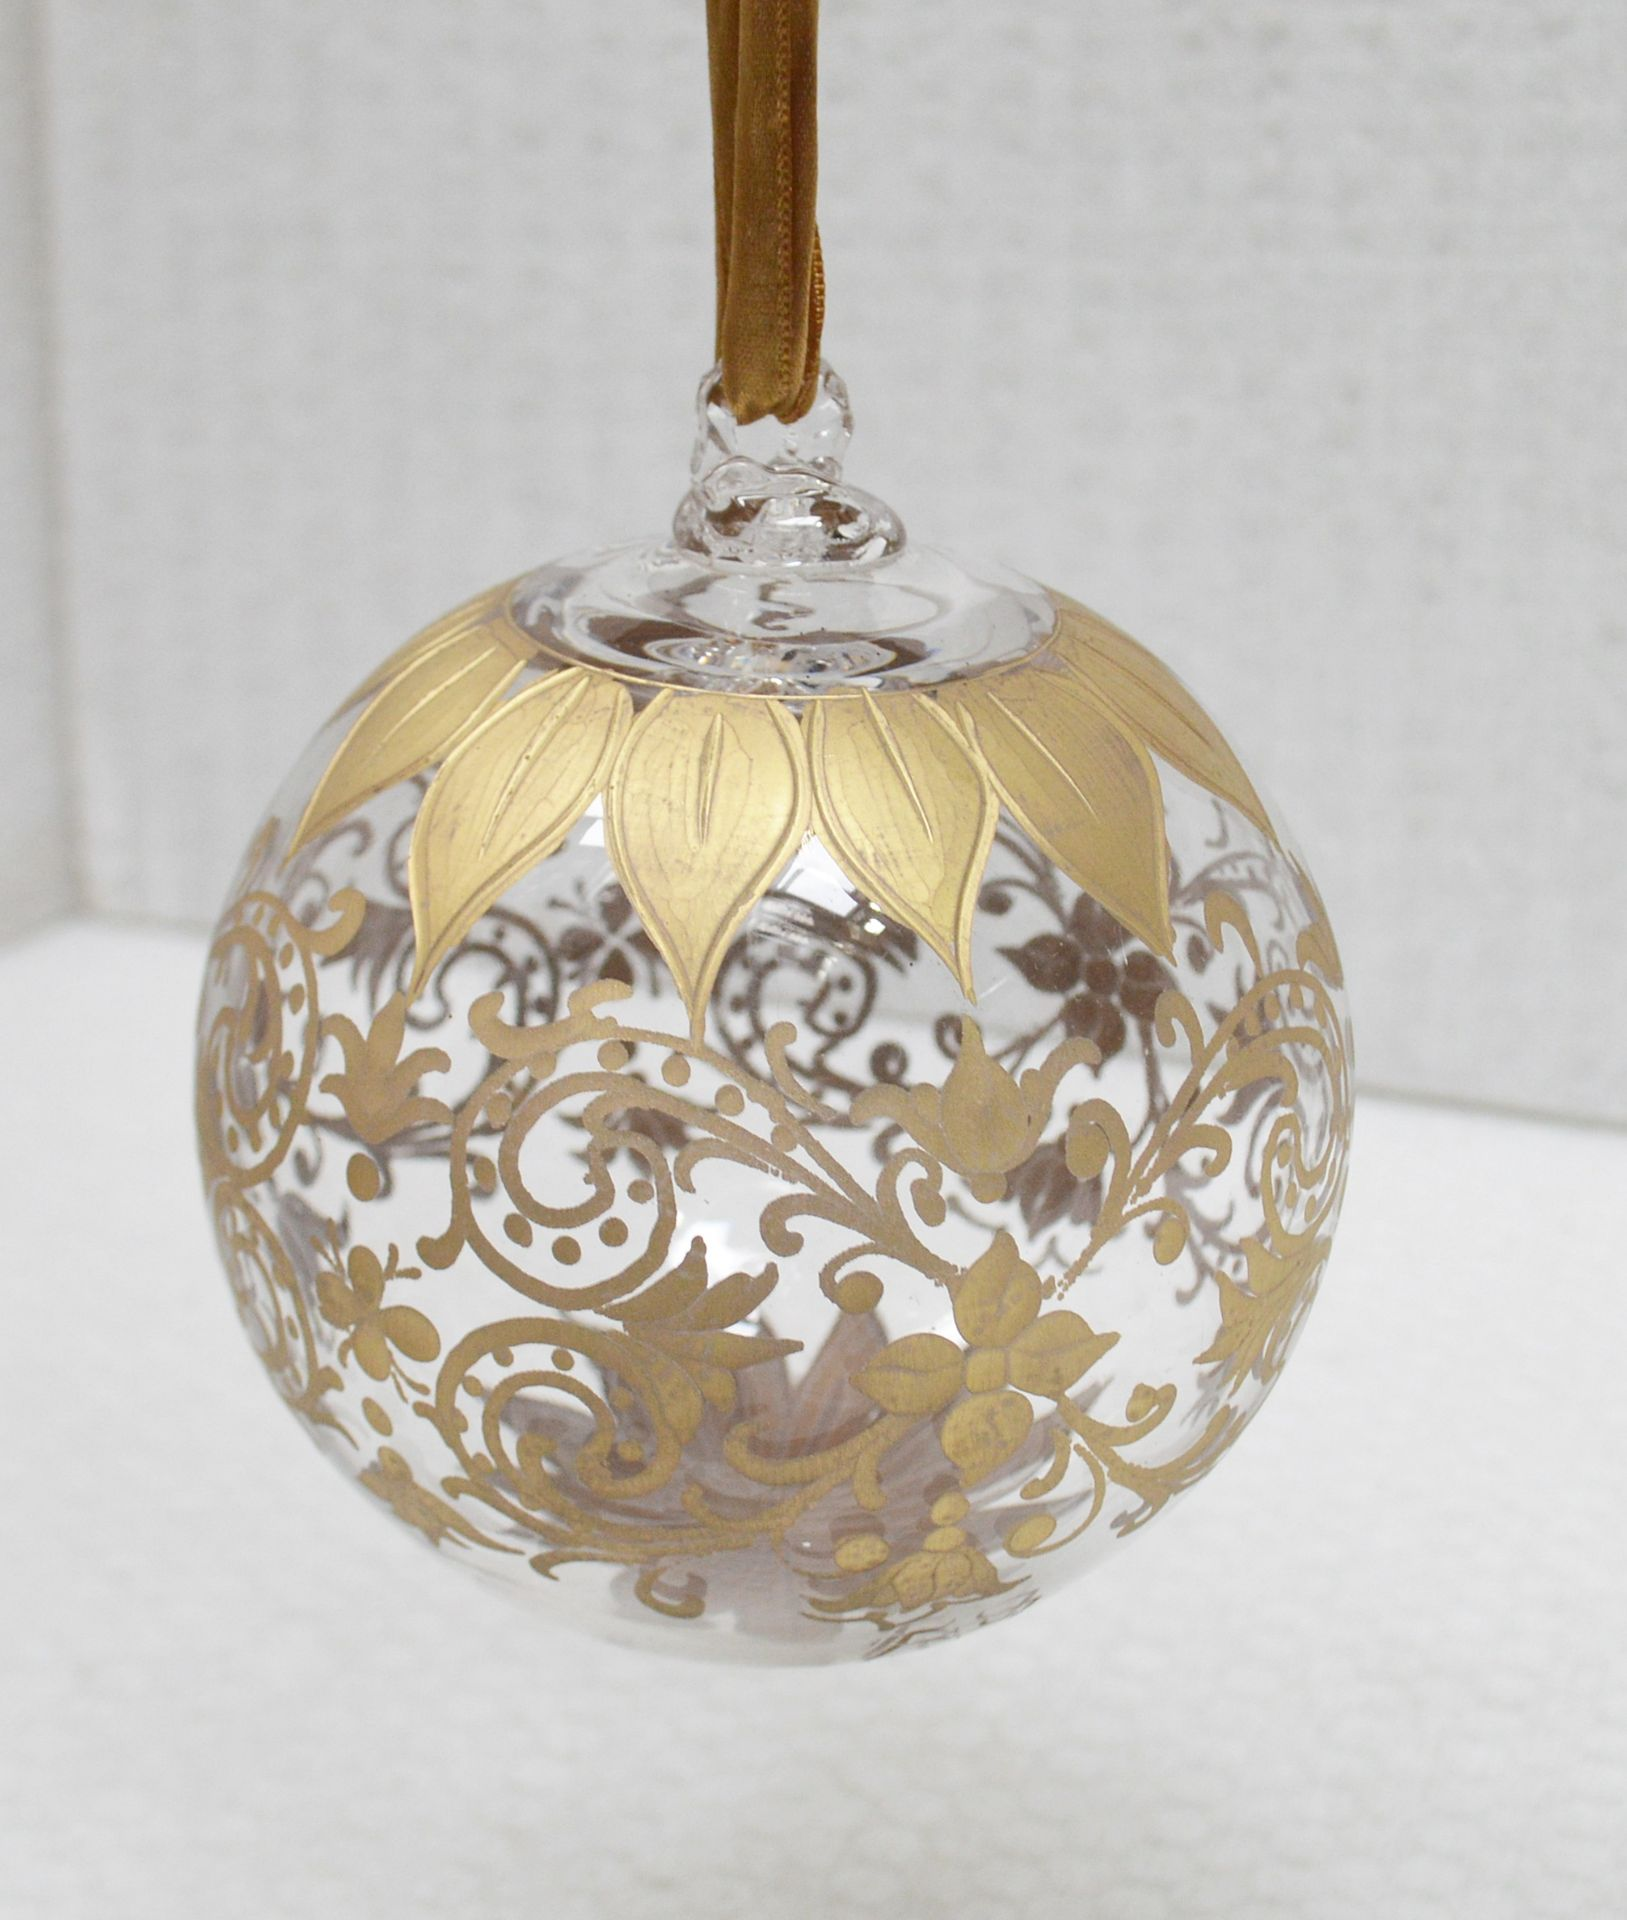 1 x BALDI 'Home Jewels' Italian Hand-crafted Artisan Christmas Tree Decoration In Gold - Dimensions: - Image 3 of 4